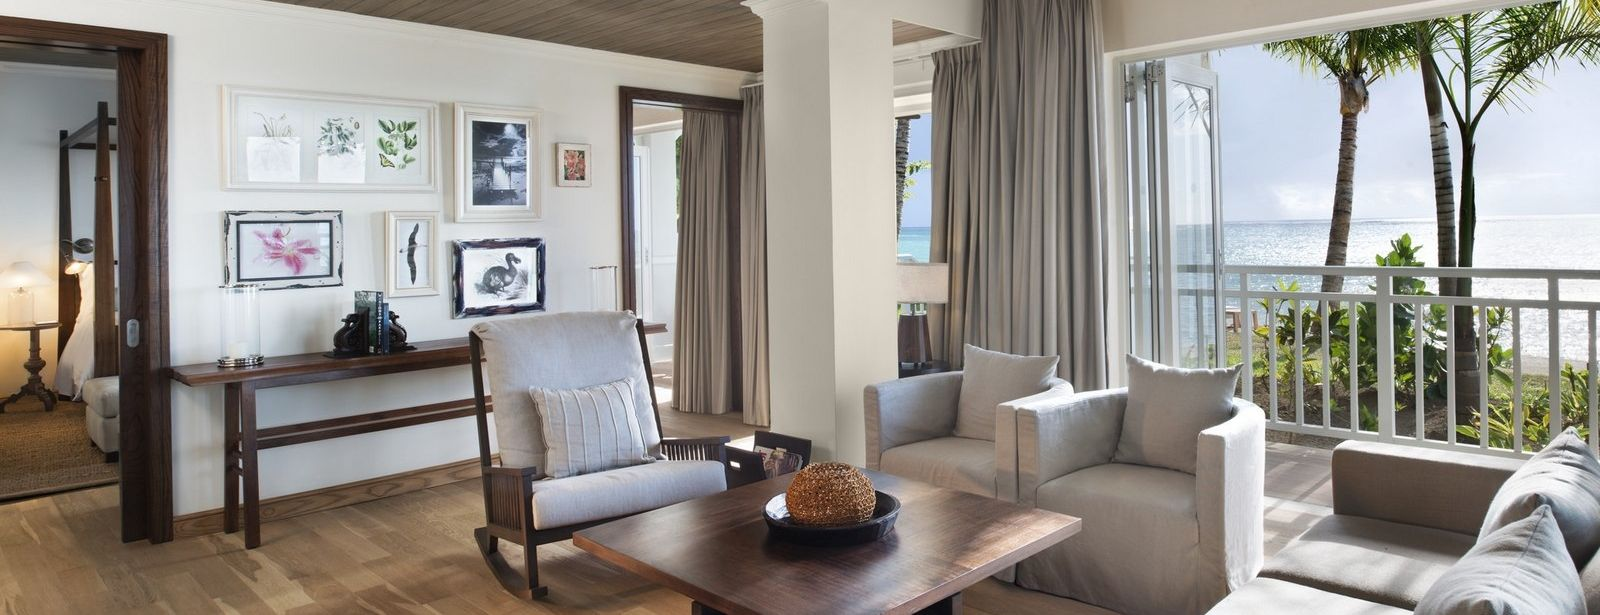 St. Regis Mauritius Beachfront St. Regis Suite living area with ocean view